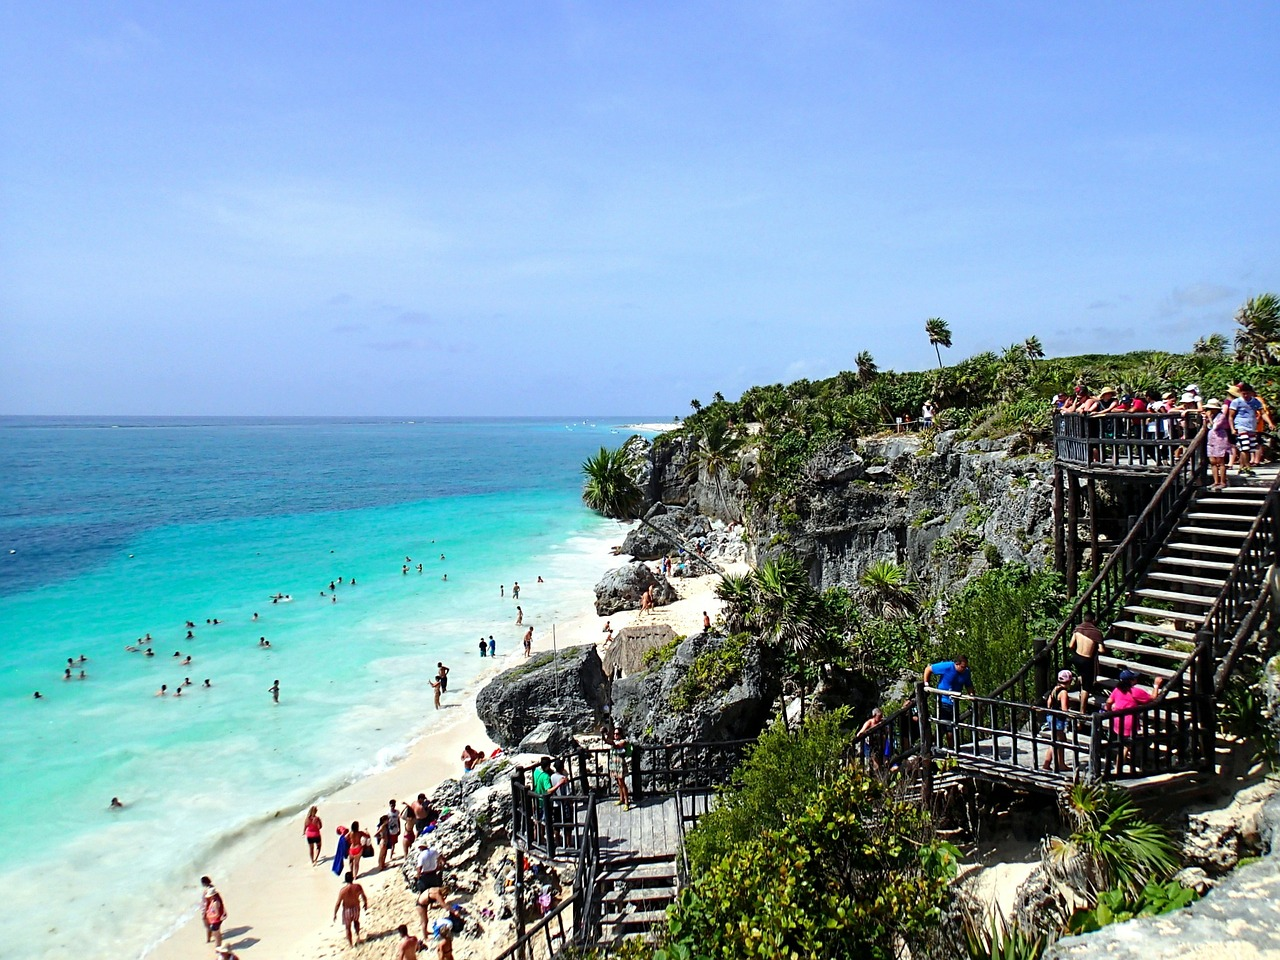 Best Beaches To Visit In Mexico